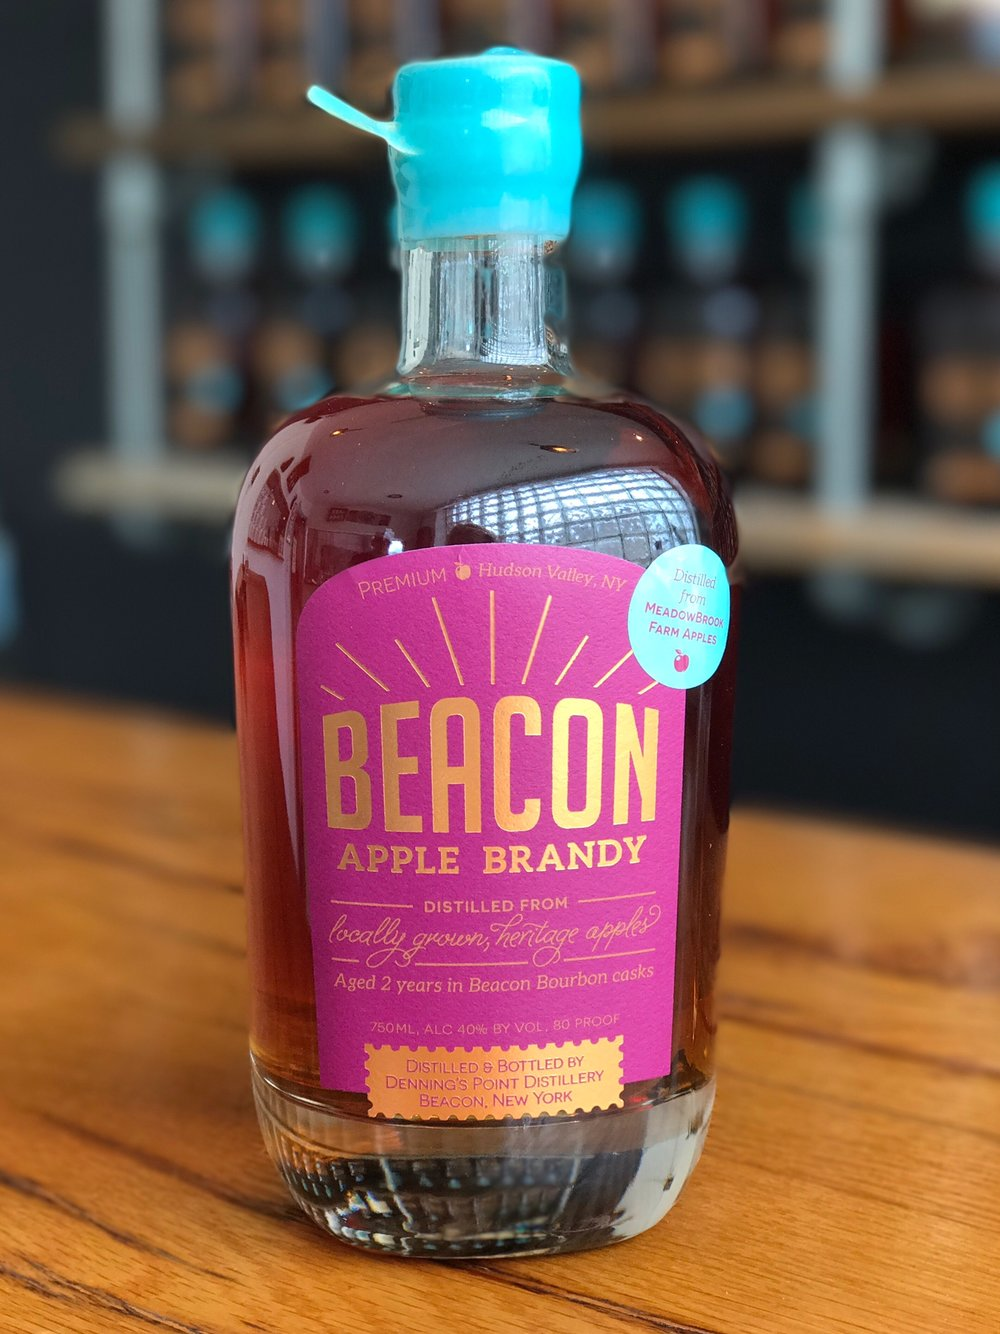 Beacon Apple Brandy.JPG